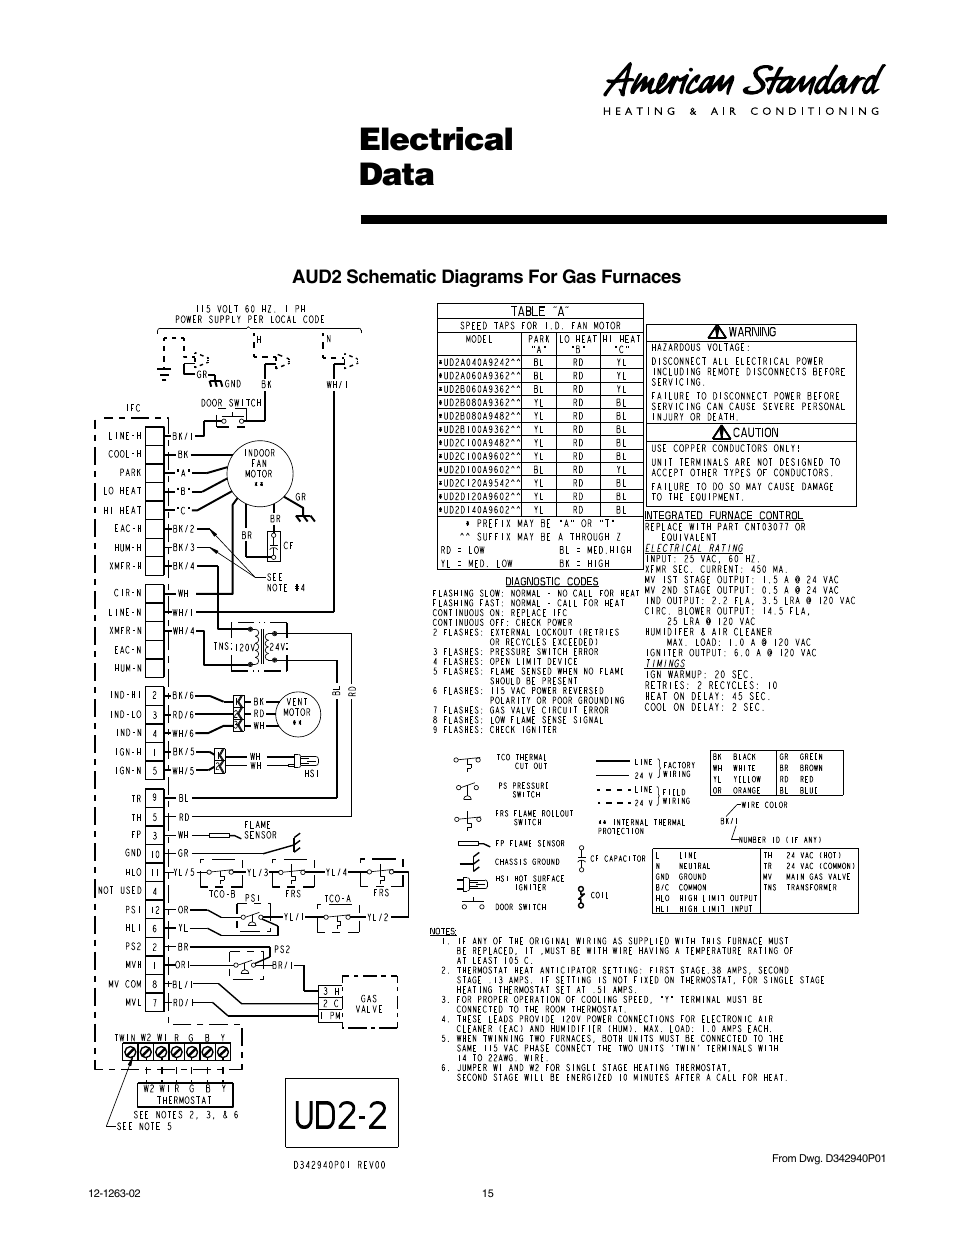 Electrical Data